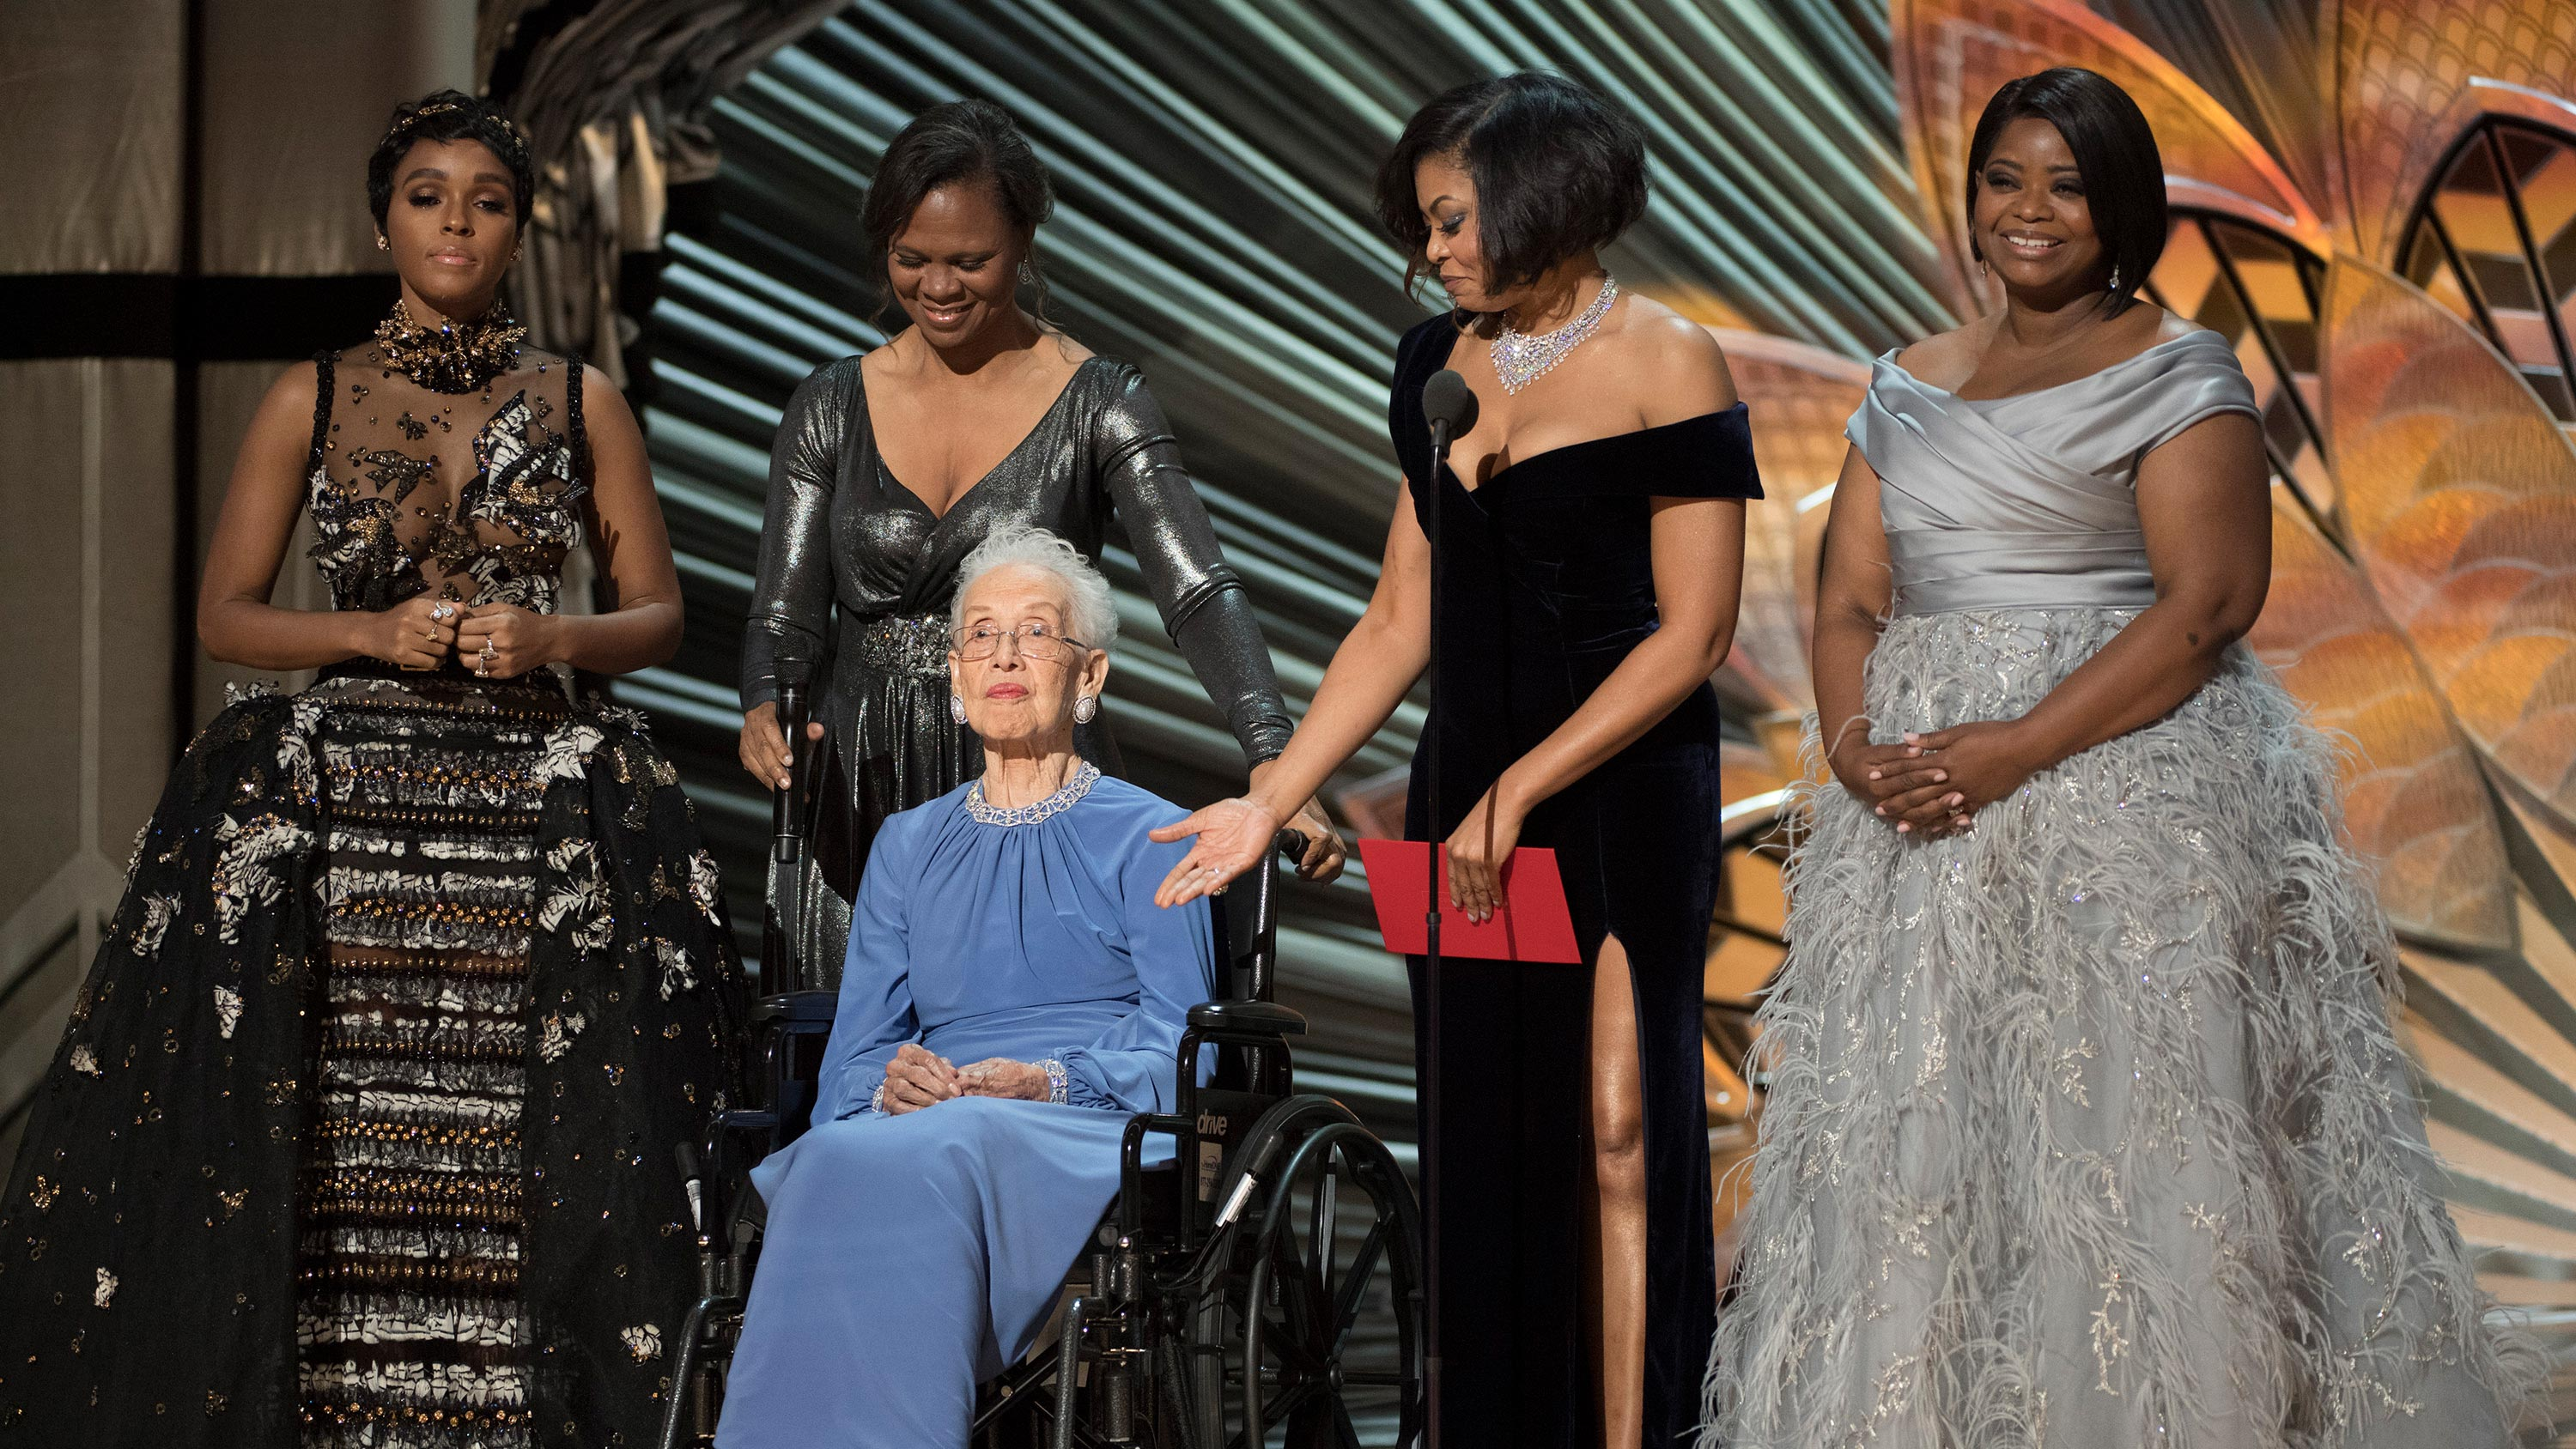 ABC's Coverage Of The 89th Annual Academy Awards